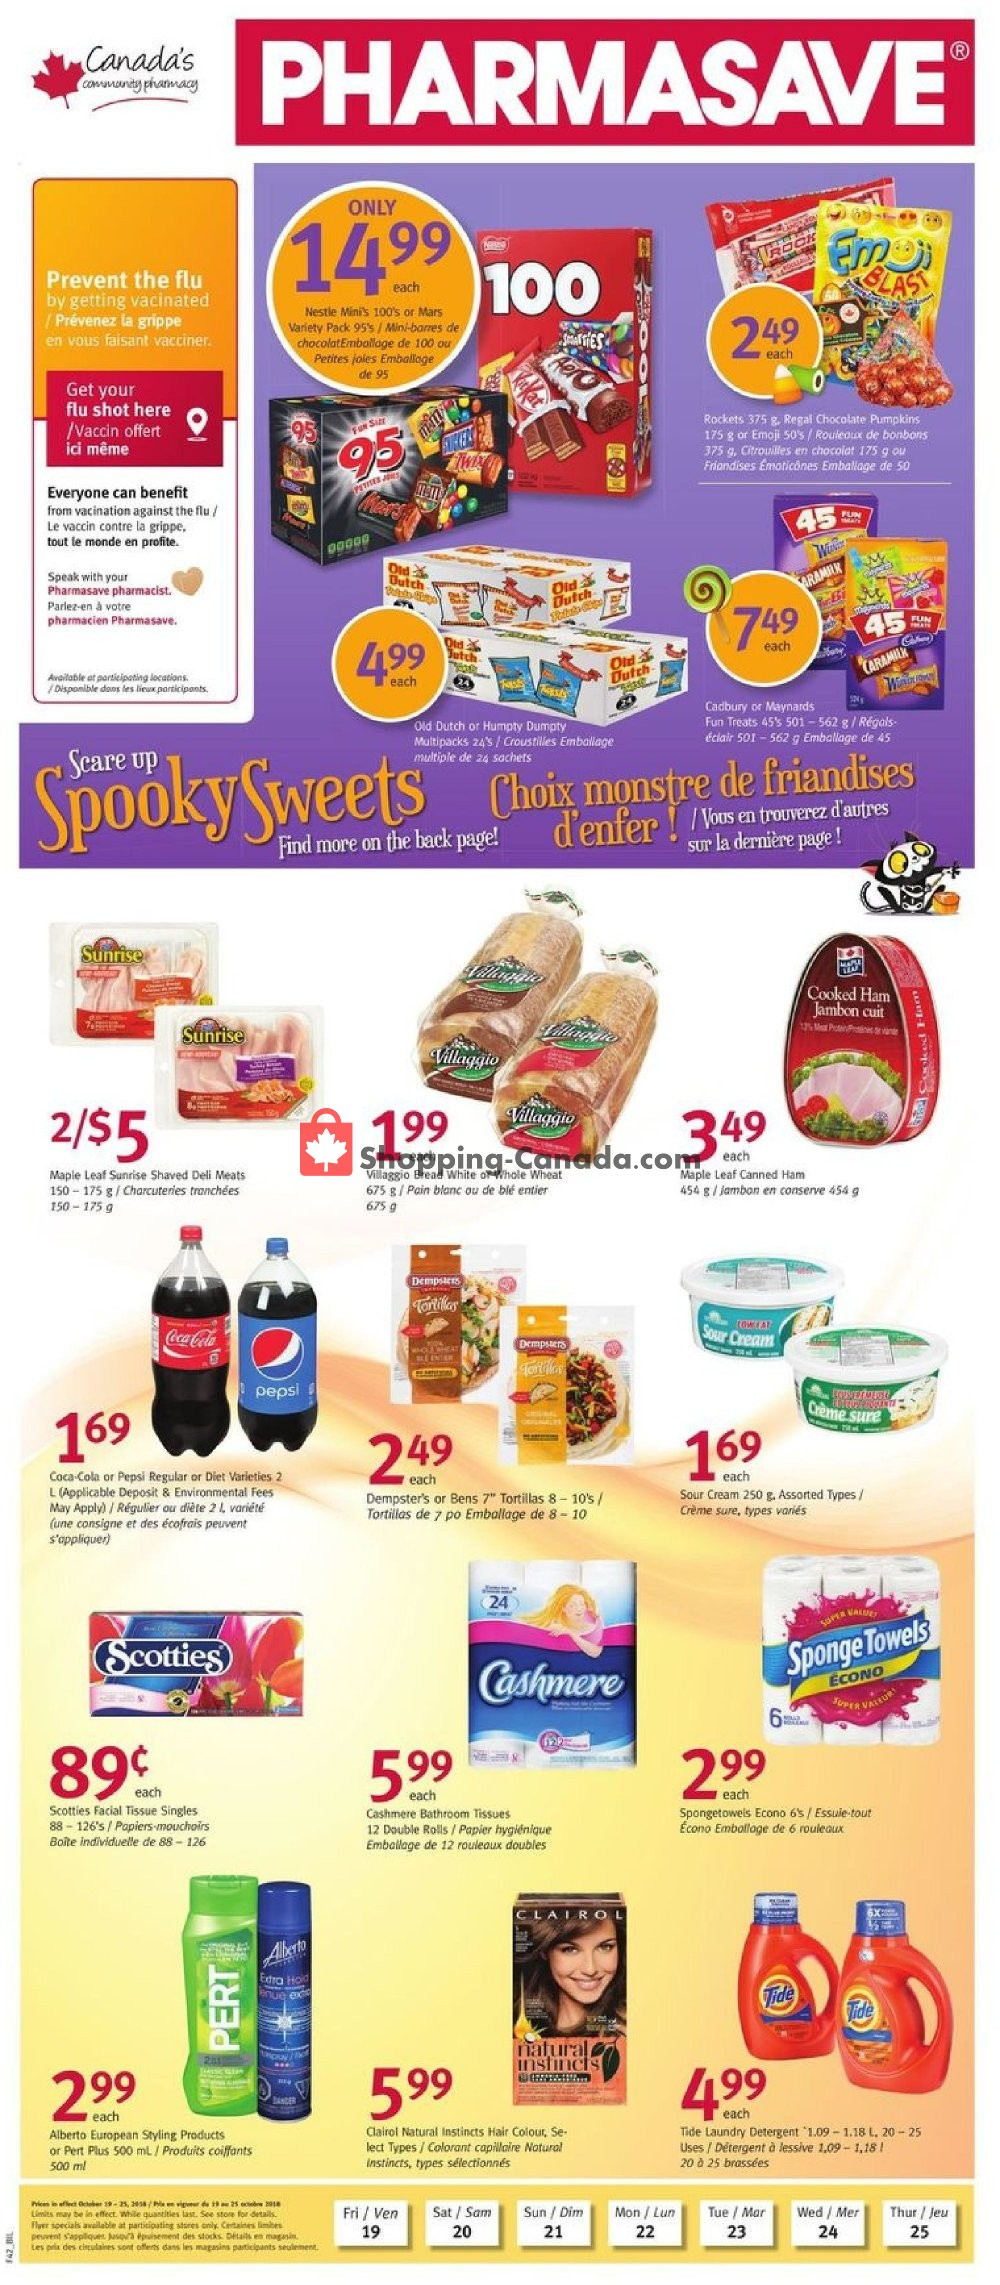 Flyer Pharmasave Canada - from Friday October 19, 2018 to Thursday October 25, 2018